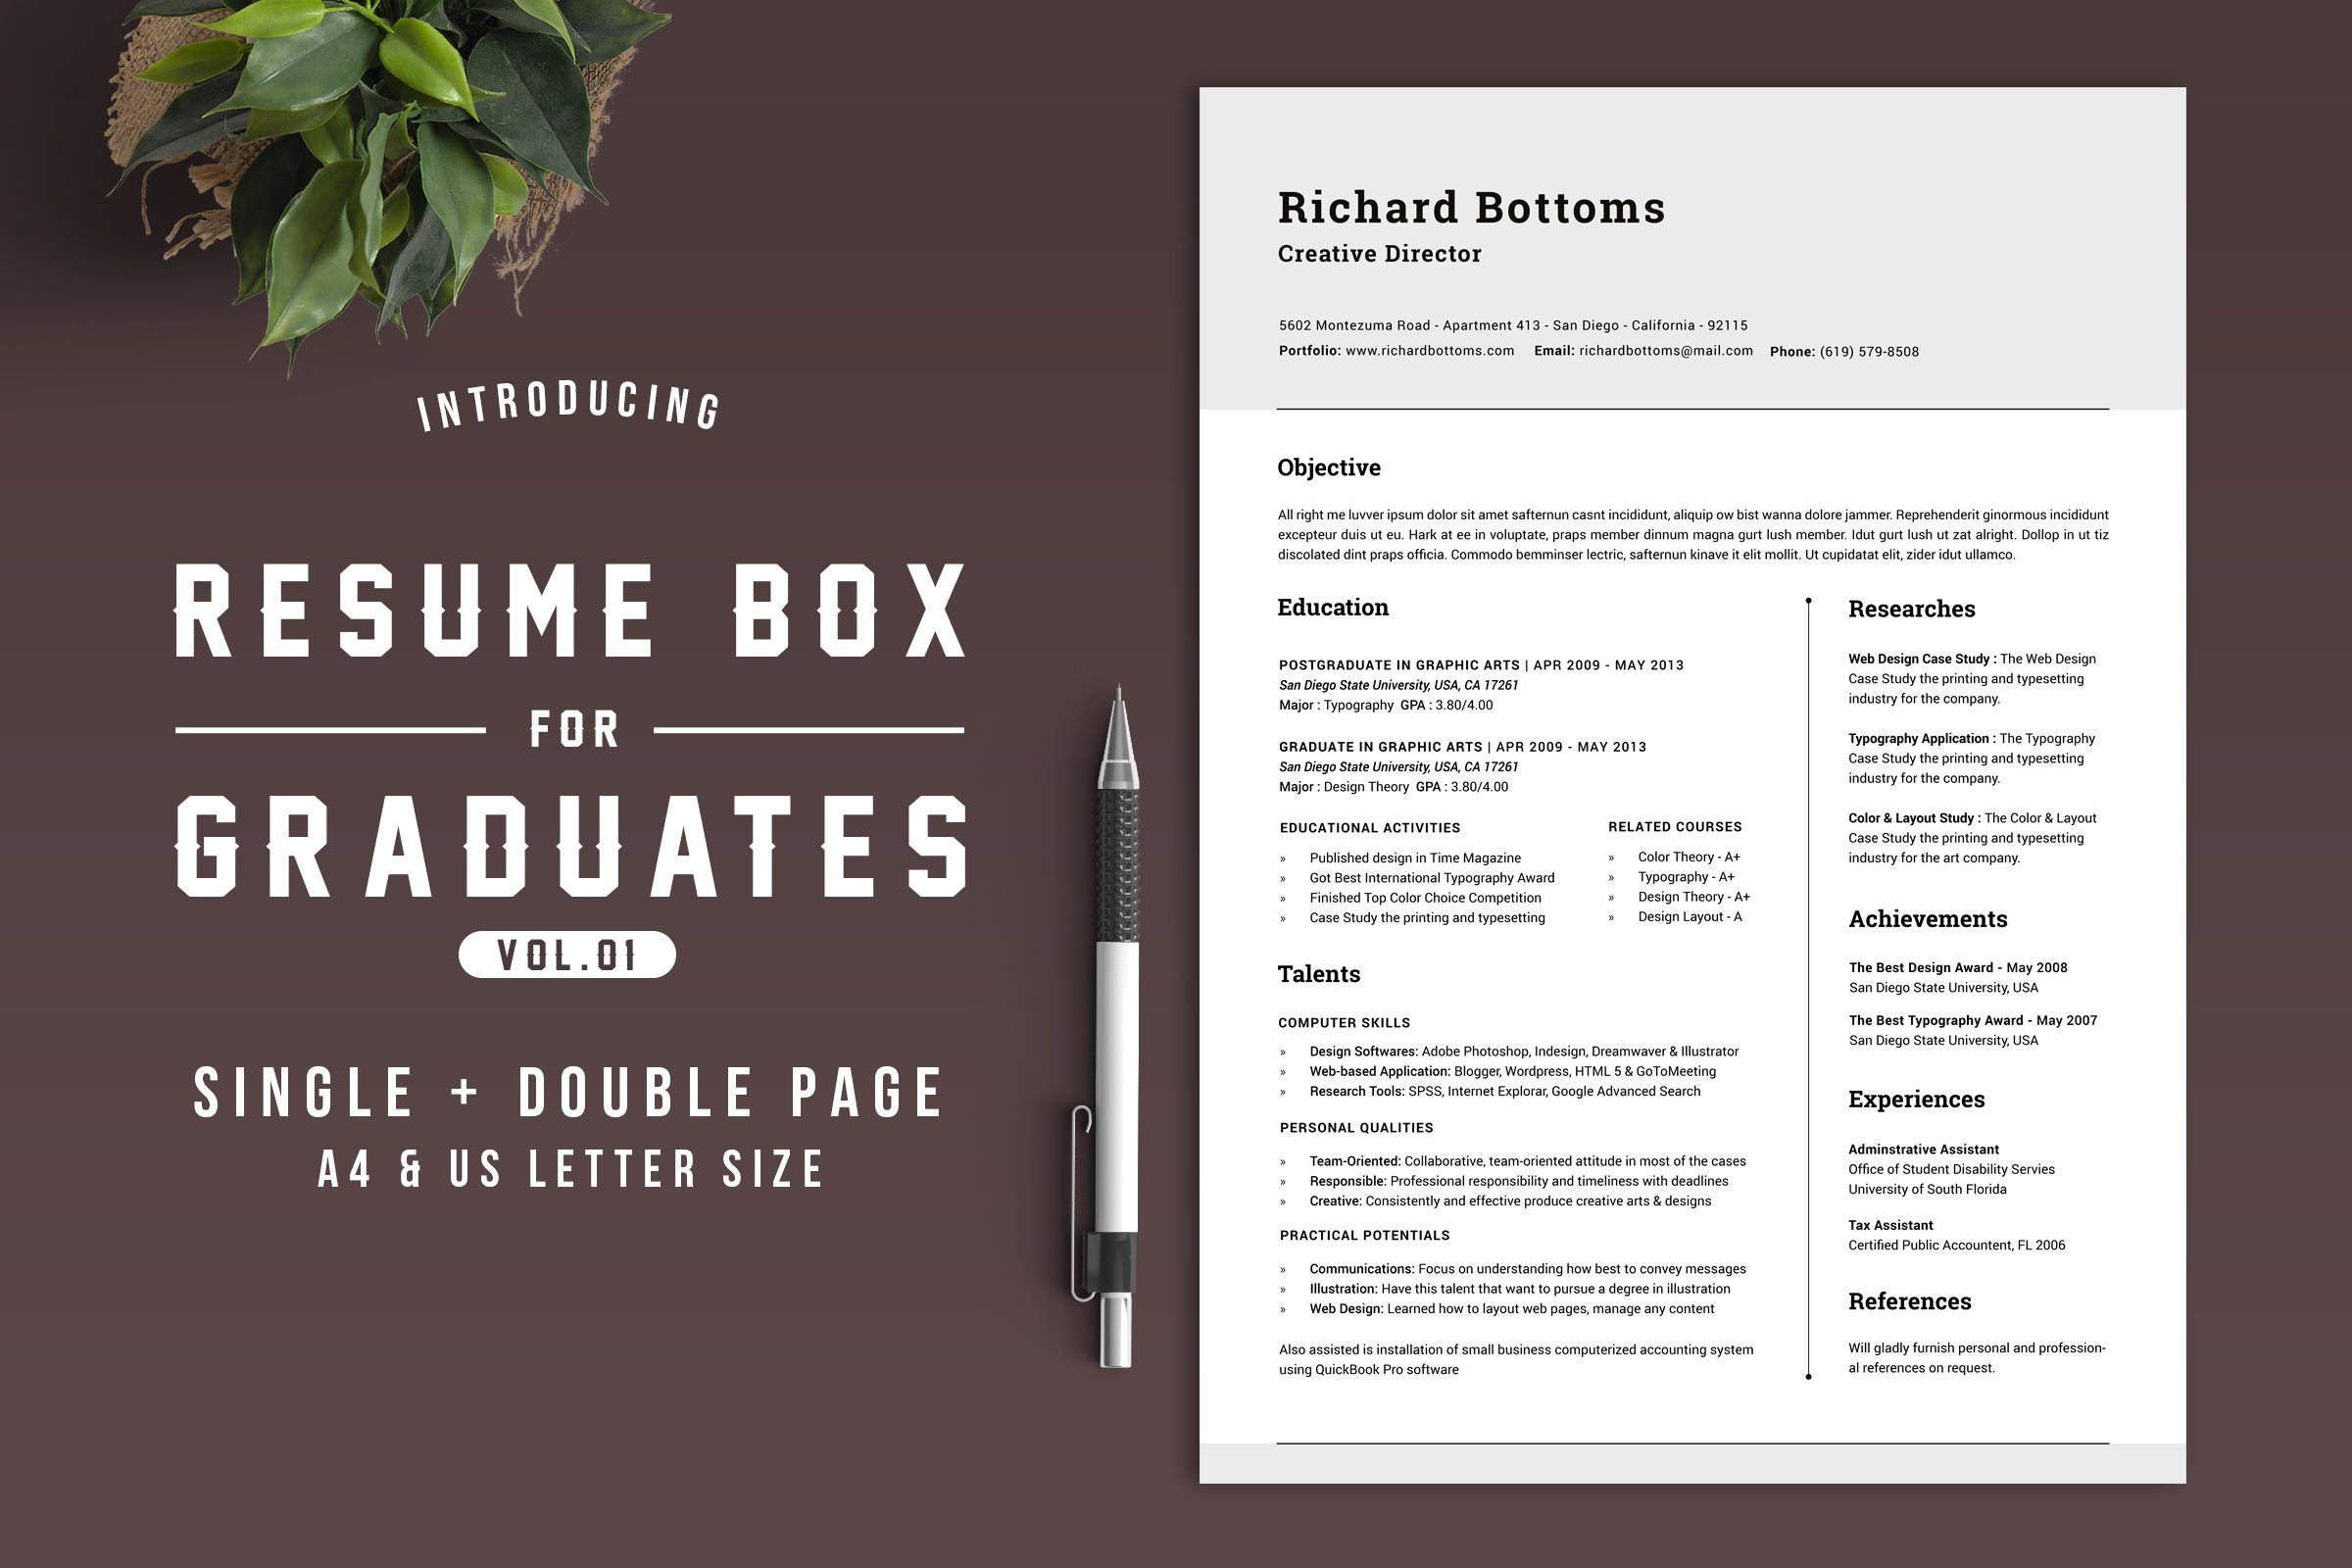 Plant Accountant Sample Resume Resume Box For College Graduates V.1  Design Packaging